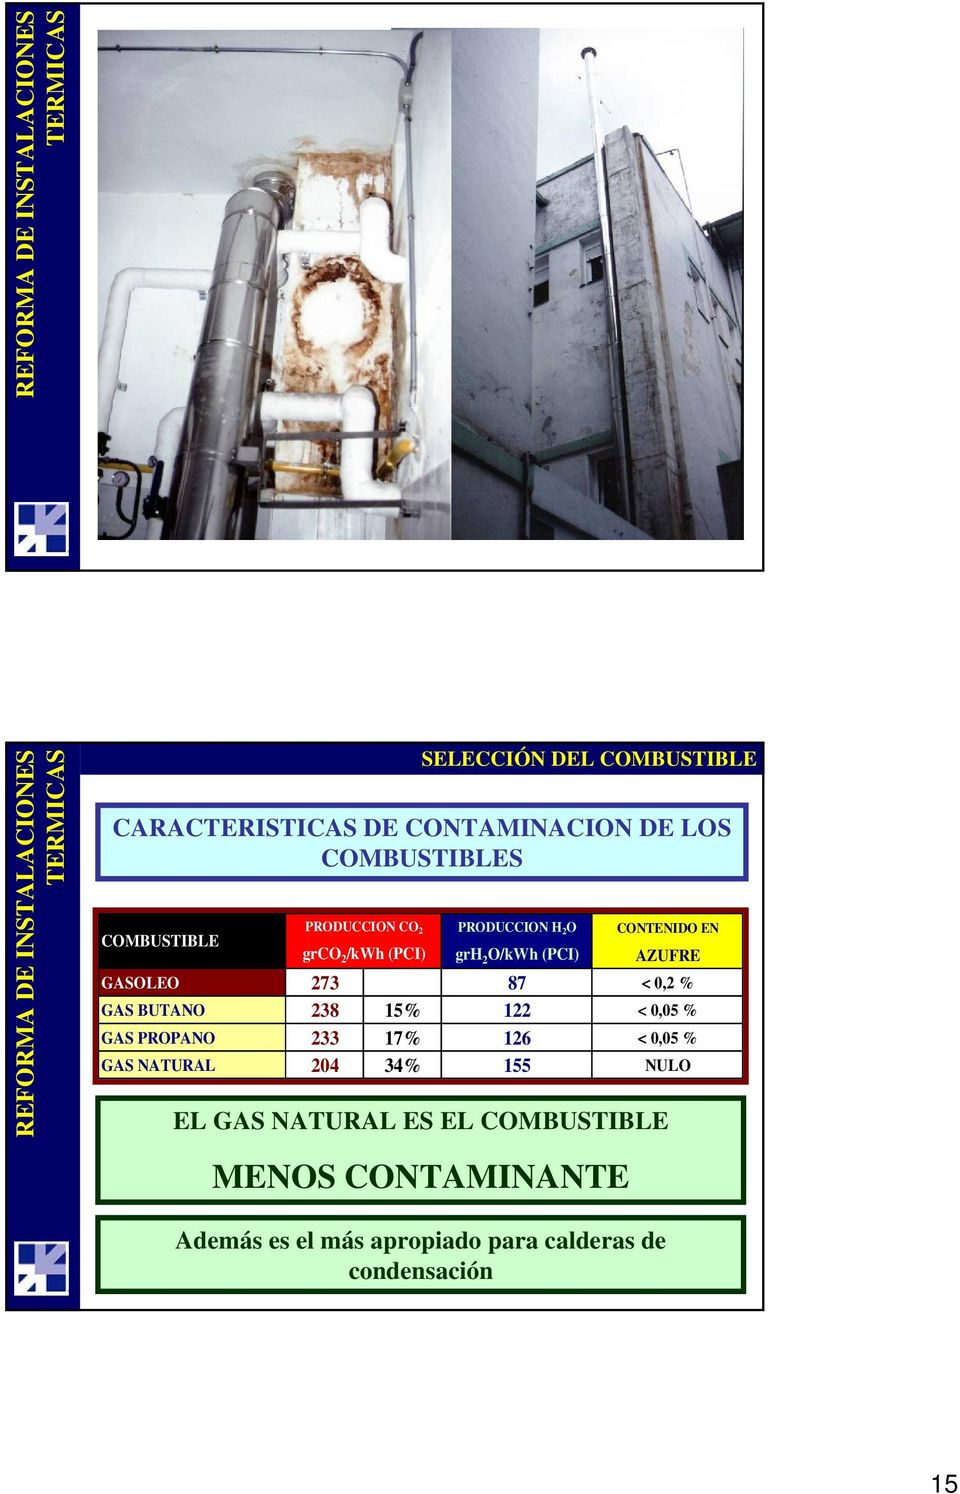 GAS BUTANO 238 15% 122 < 0,05 % GAS PROPANO 233 17% 126 < 0,05 % GAS NATURAL 204 34% 155 NULO EL GAS